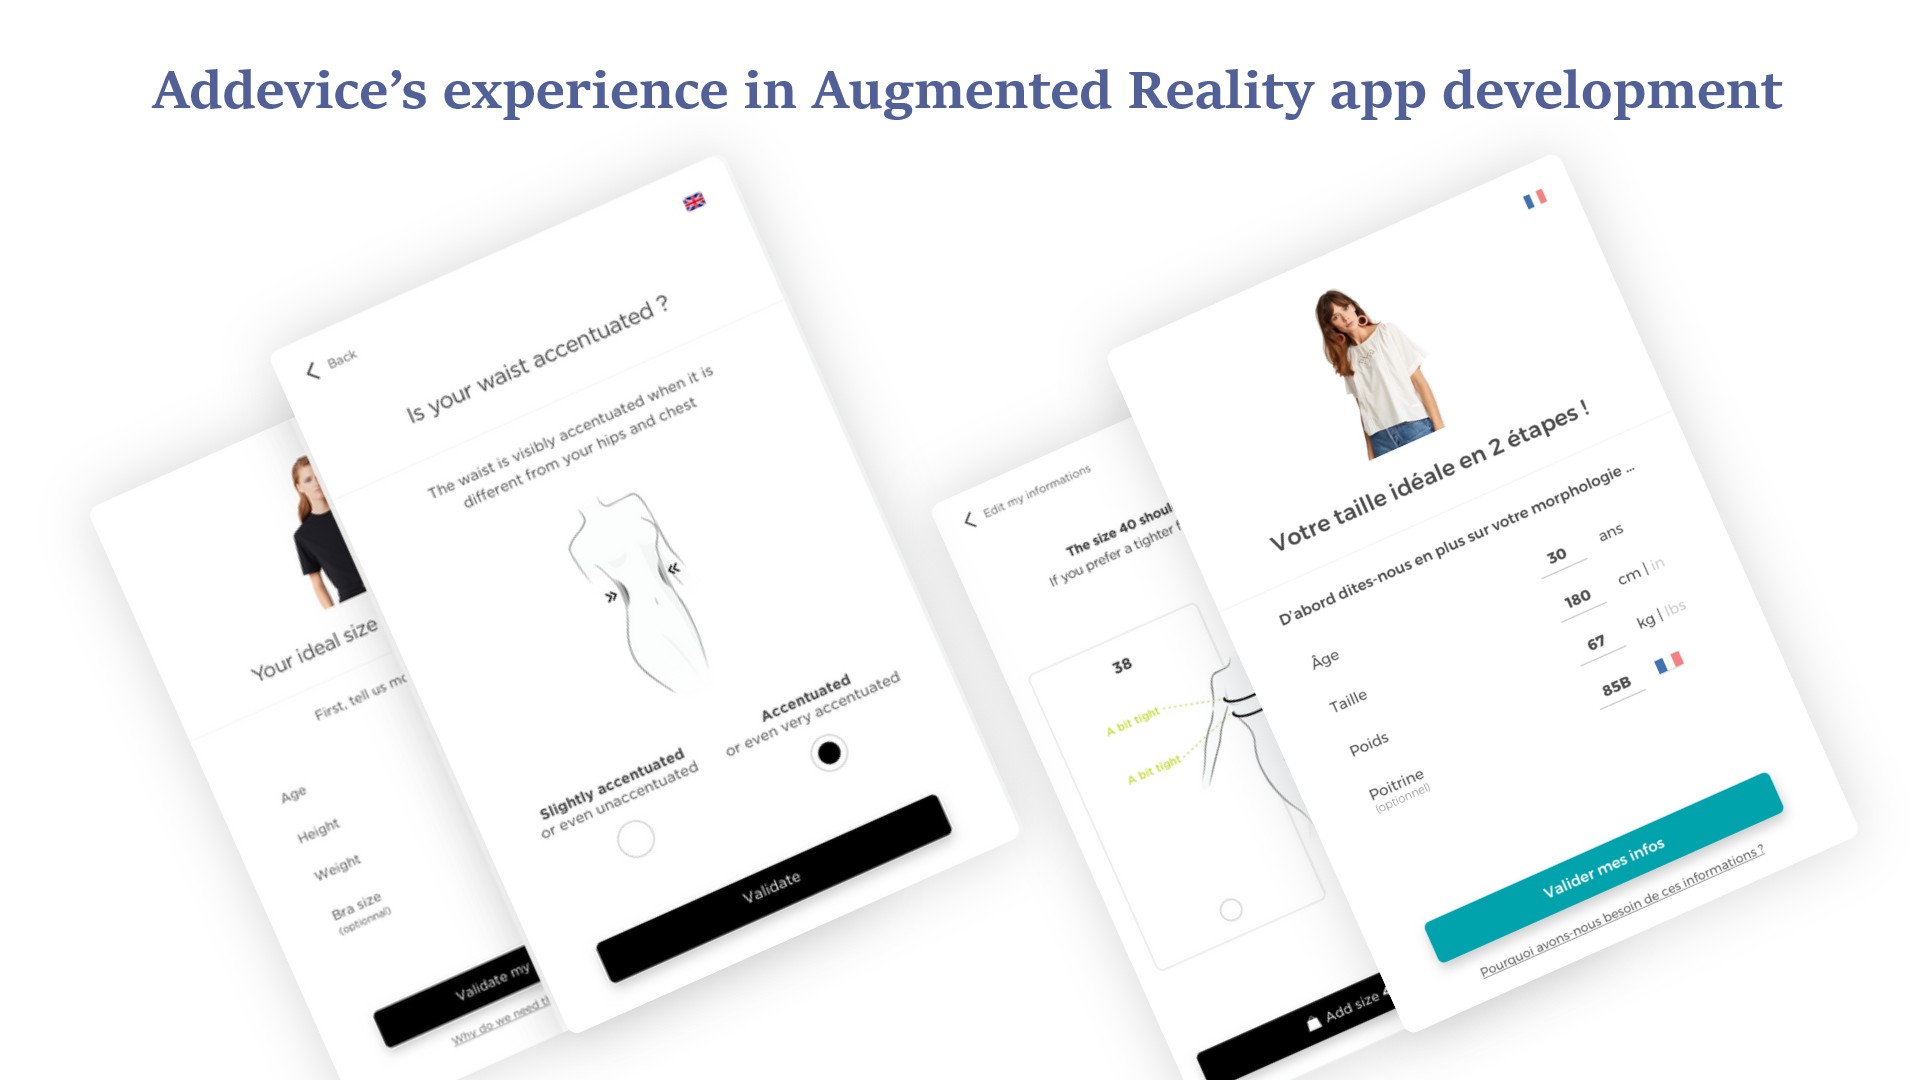 Addevice's Experience in Augmented Reality App Development